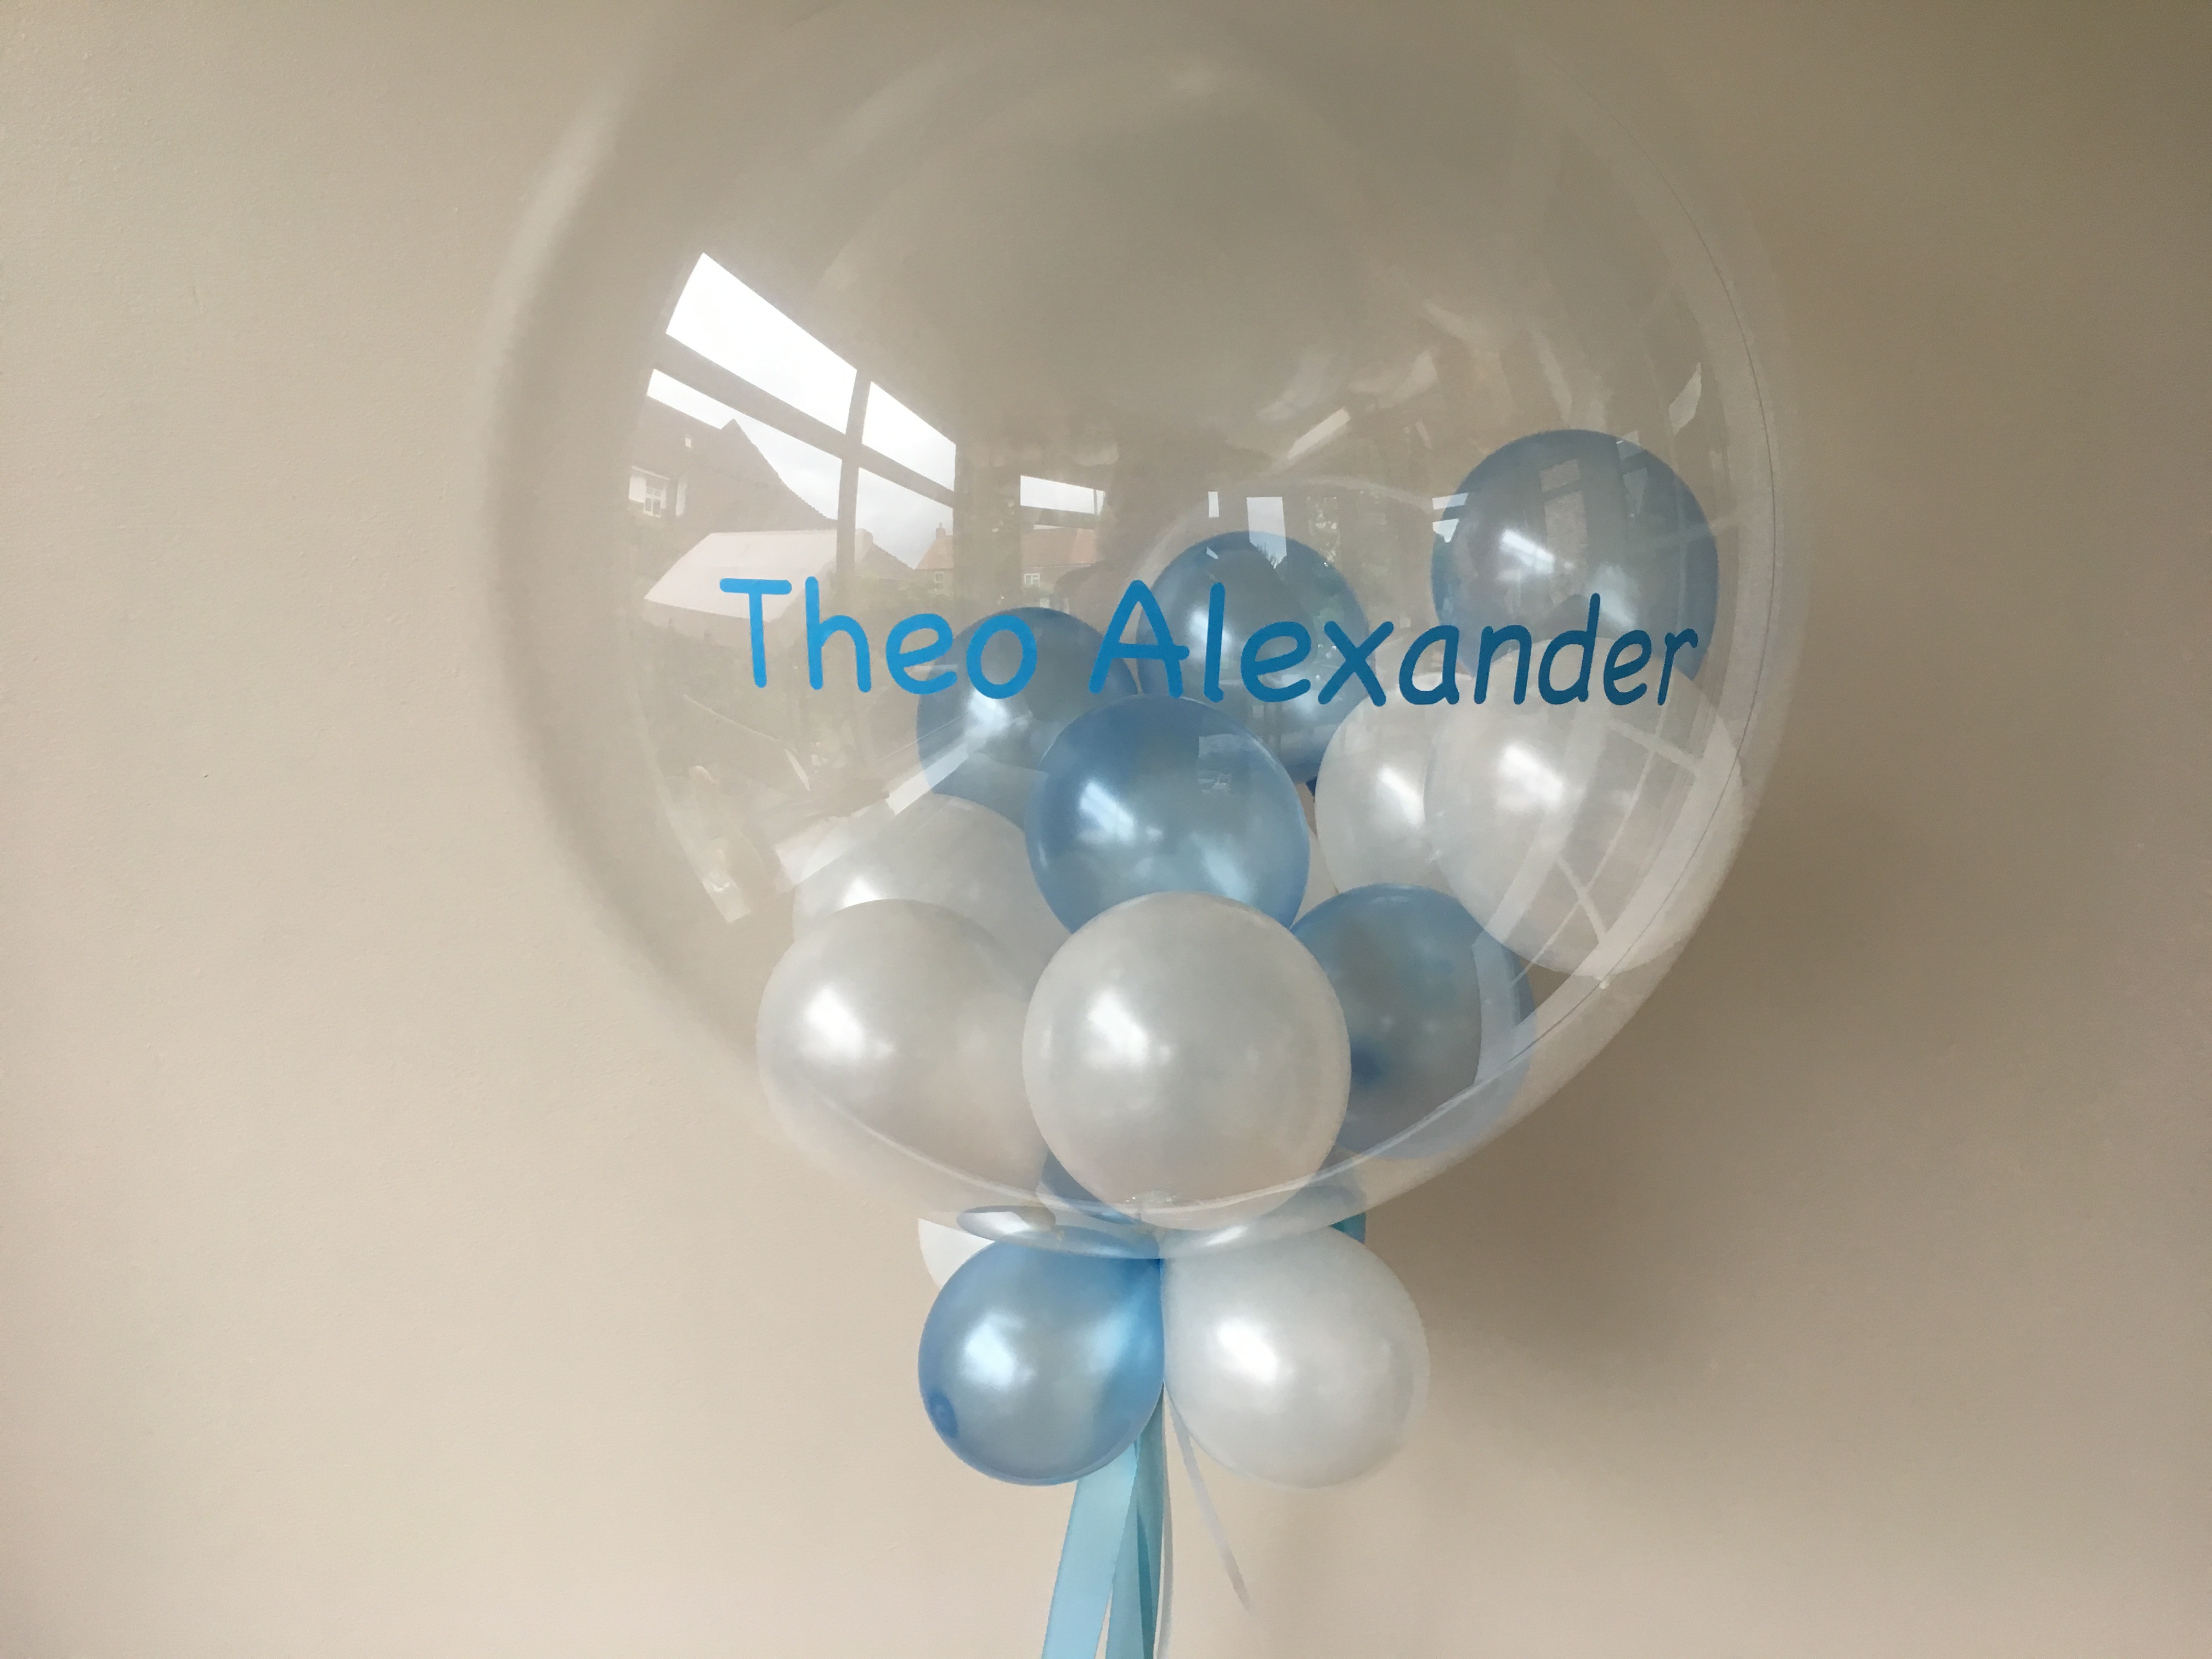 personalised, bubble, blue, white, little balloons